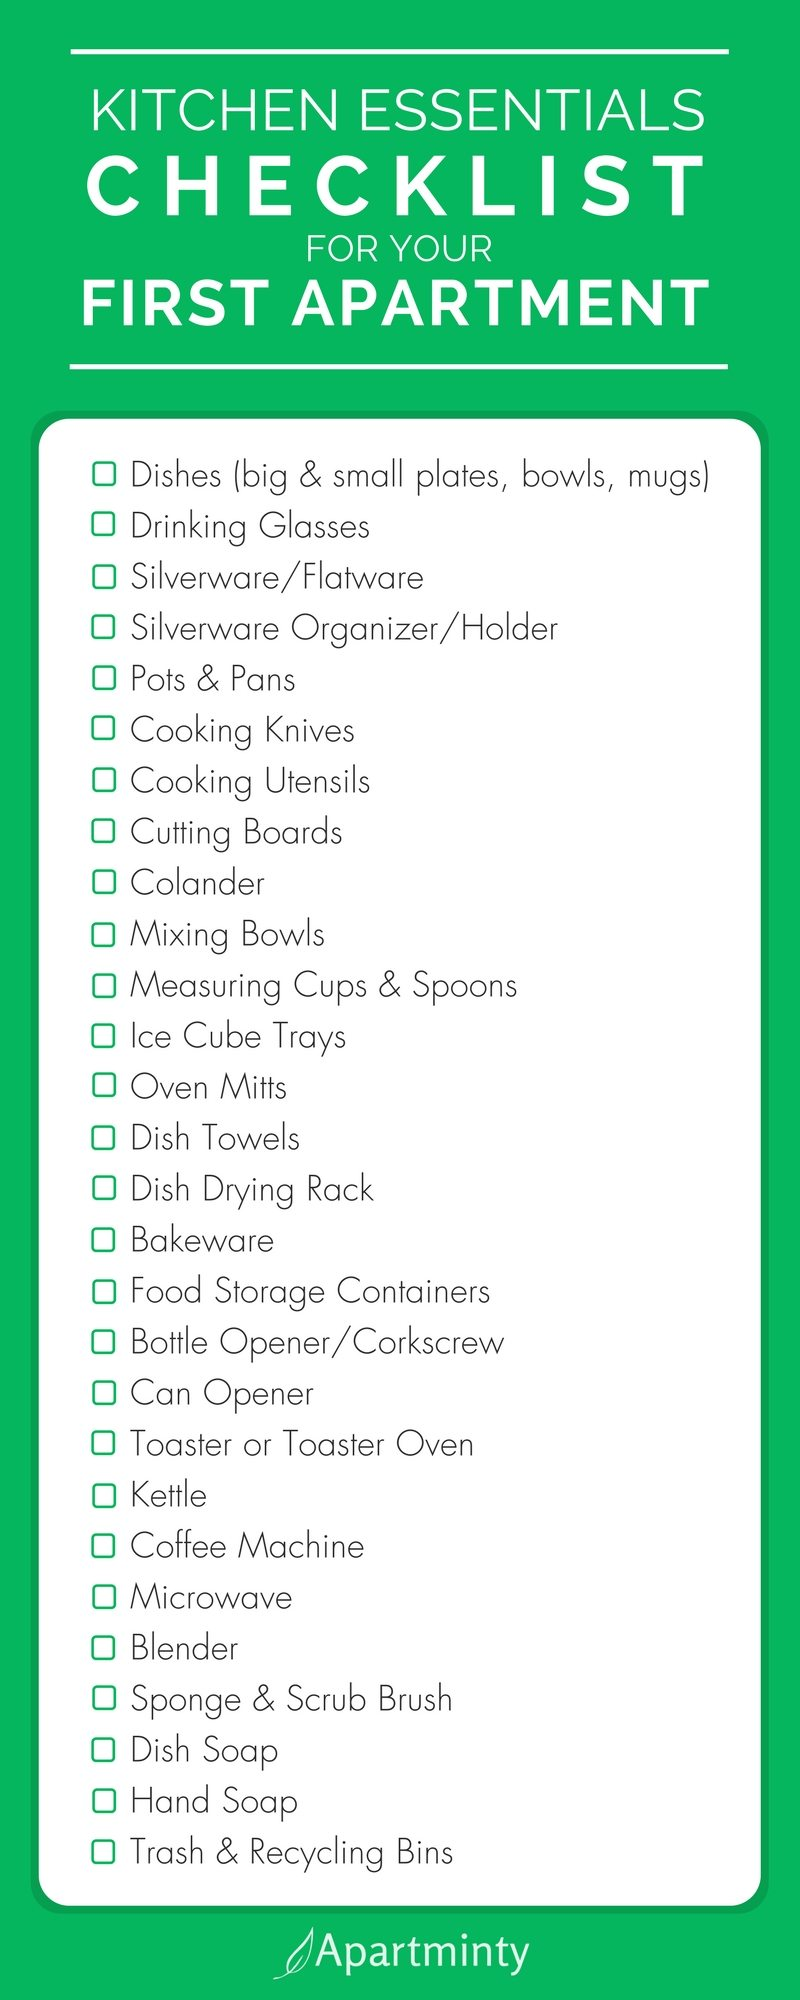 apartminty-kitchen-essentials-checklist-for-your-first-apartment ...